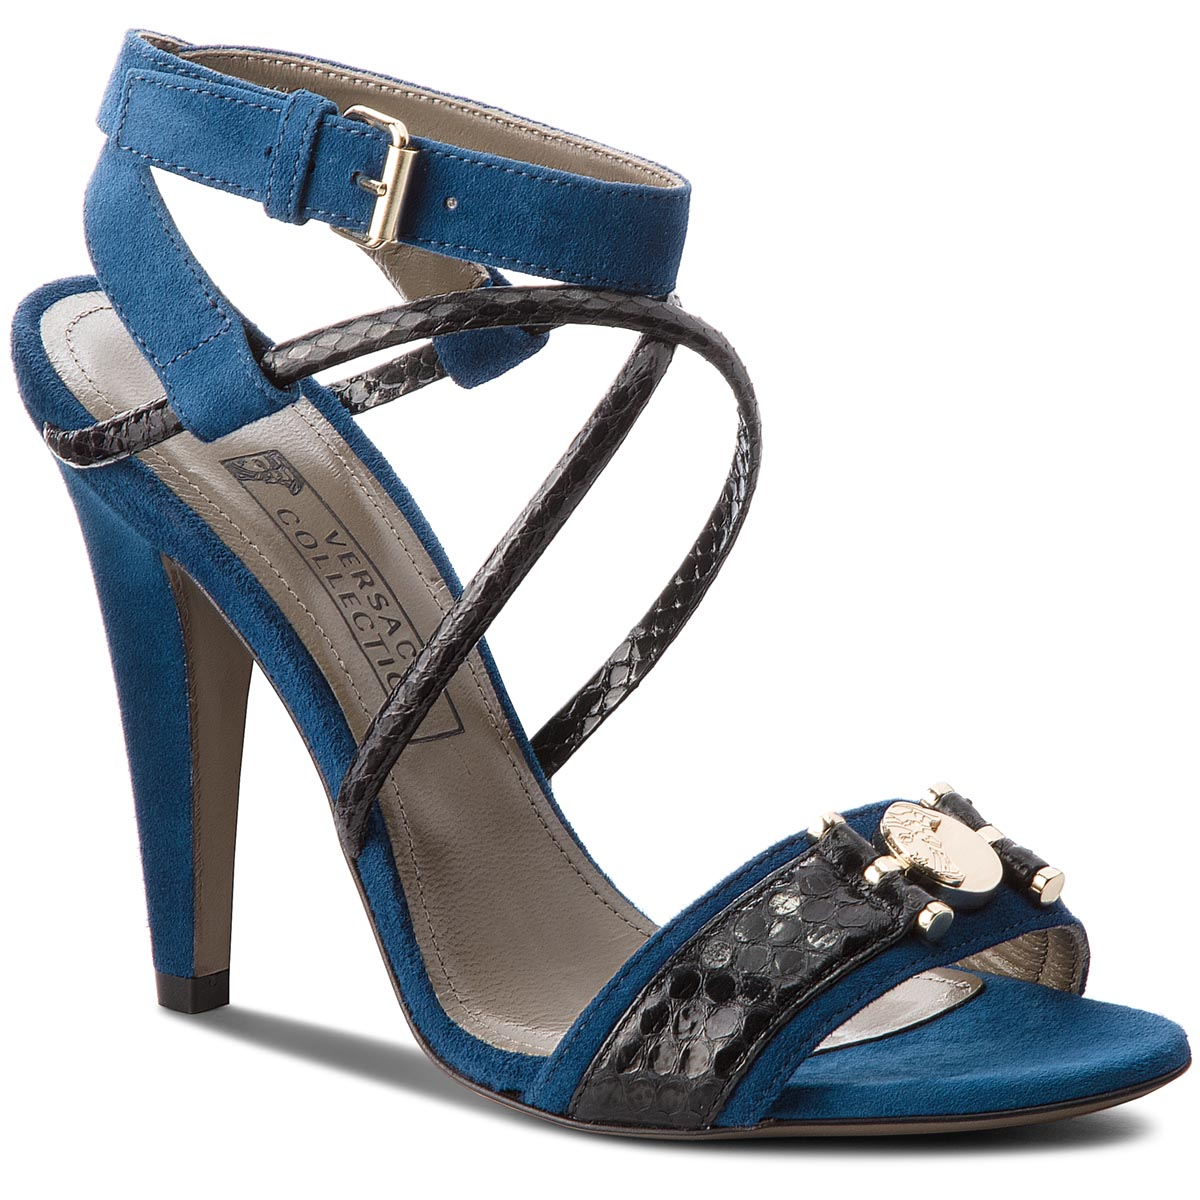 Sandale VERSACE COLLECTION - LSD5770 LRALA L492H Blue Navy/Black Oro